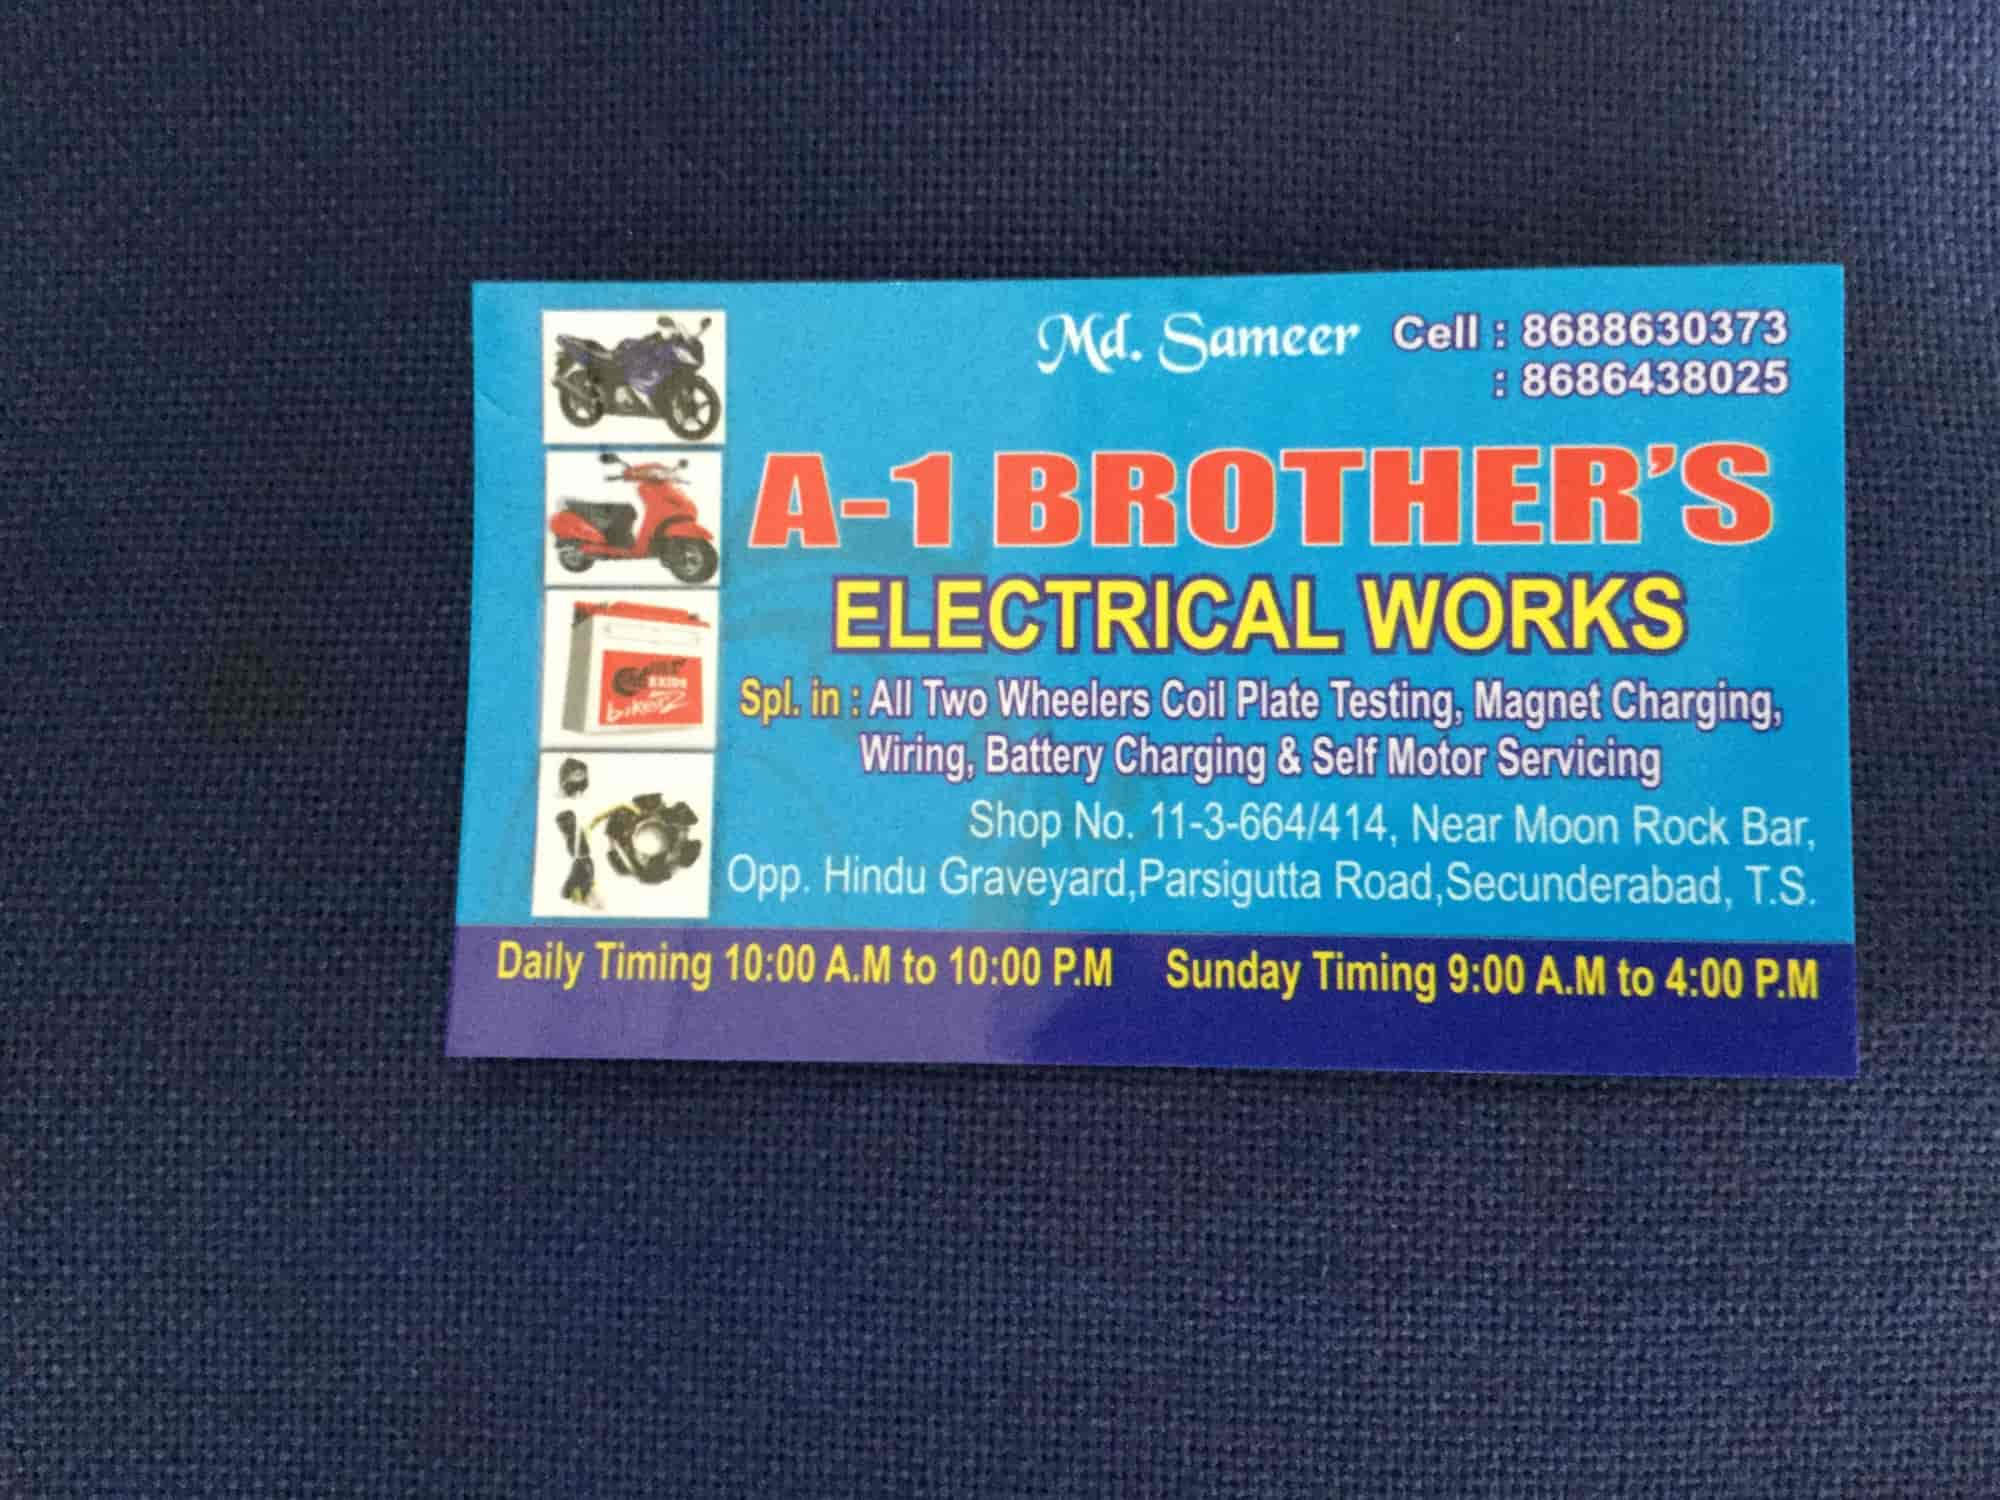 A 1 Brothers Bike Electrical Work Parsigutta Motorcycle Repair Wiring Works Vw Services Bajaj In Hyderabad Justdial